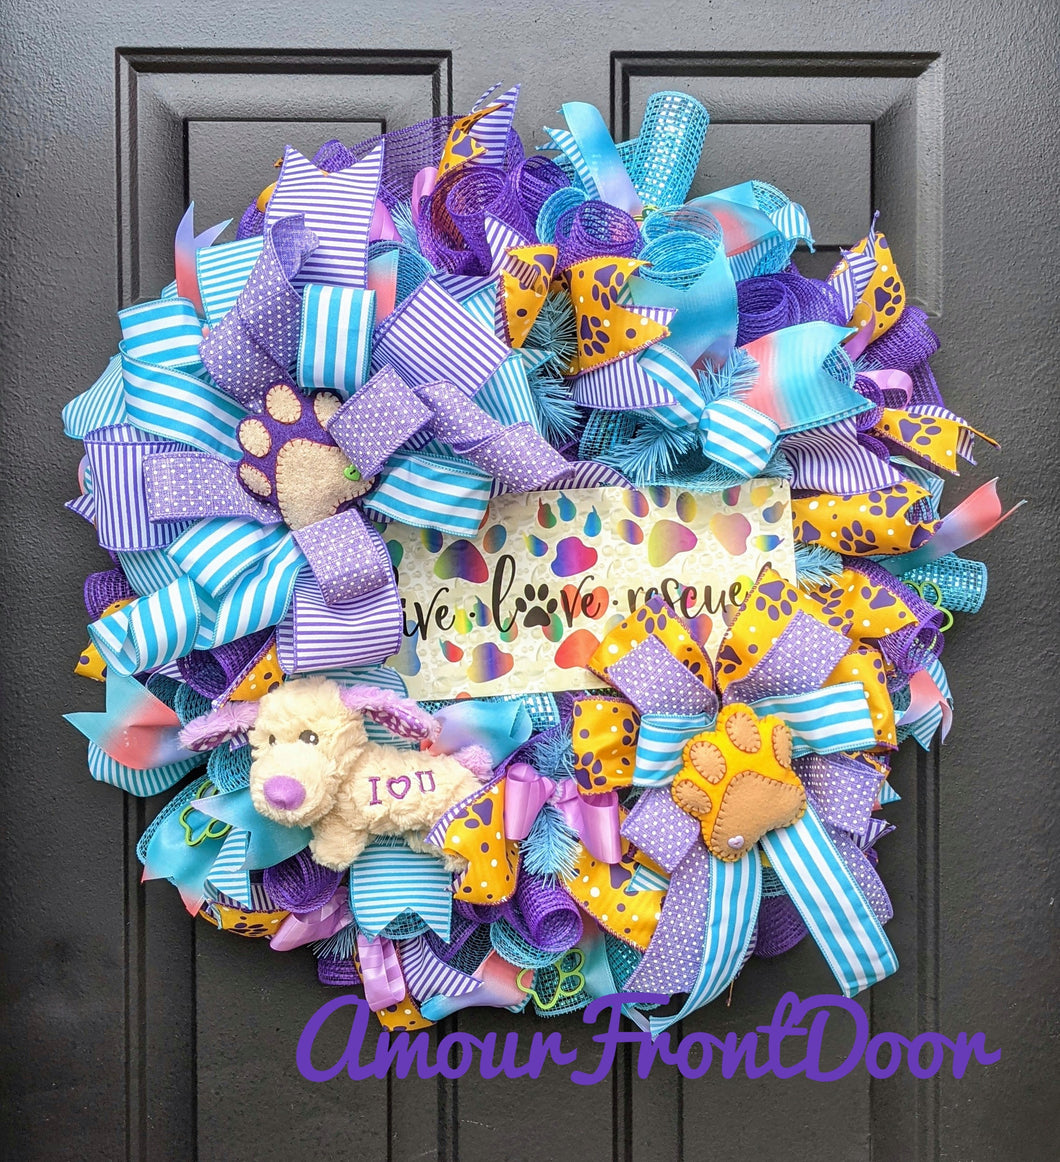 Live Love Rescue Wreath - Tye Dye Wreath - Plush Dog I Love You - Custom Order